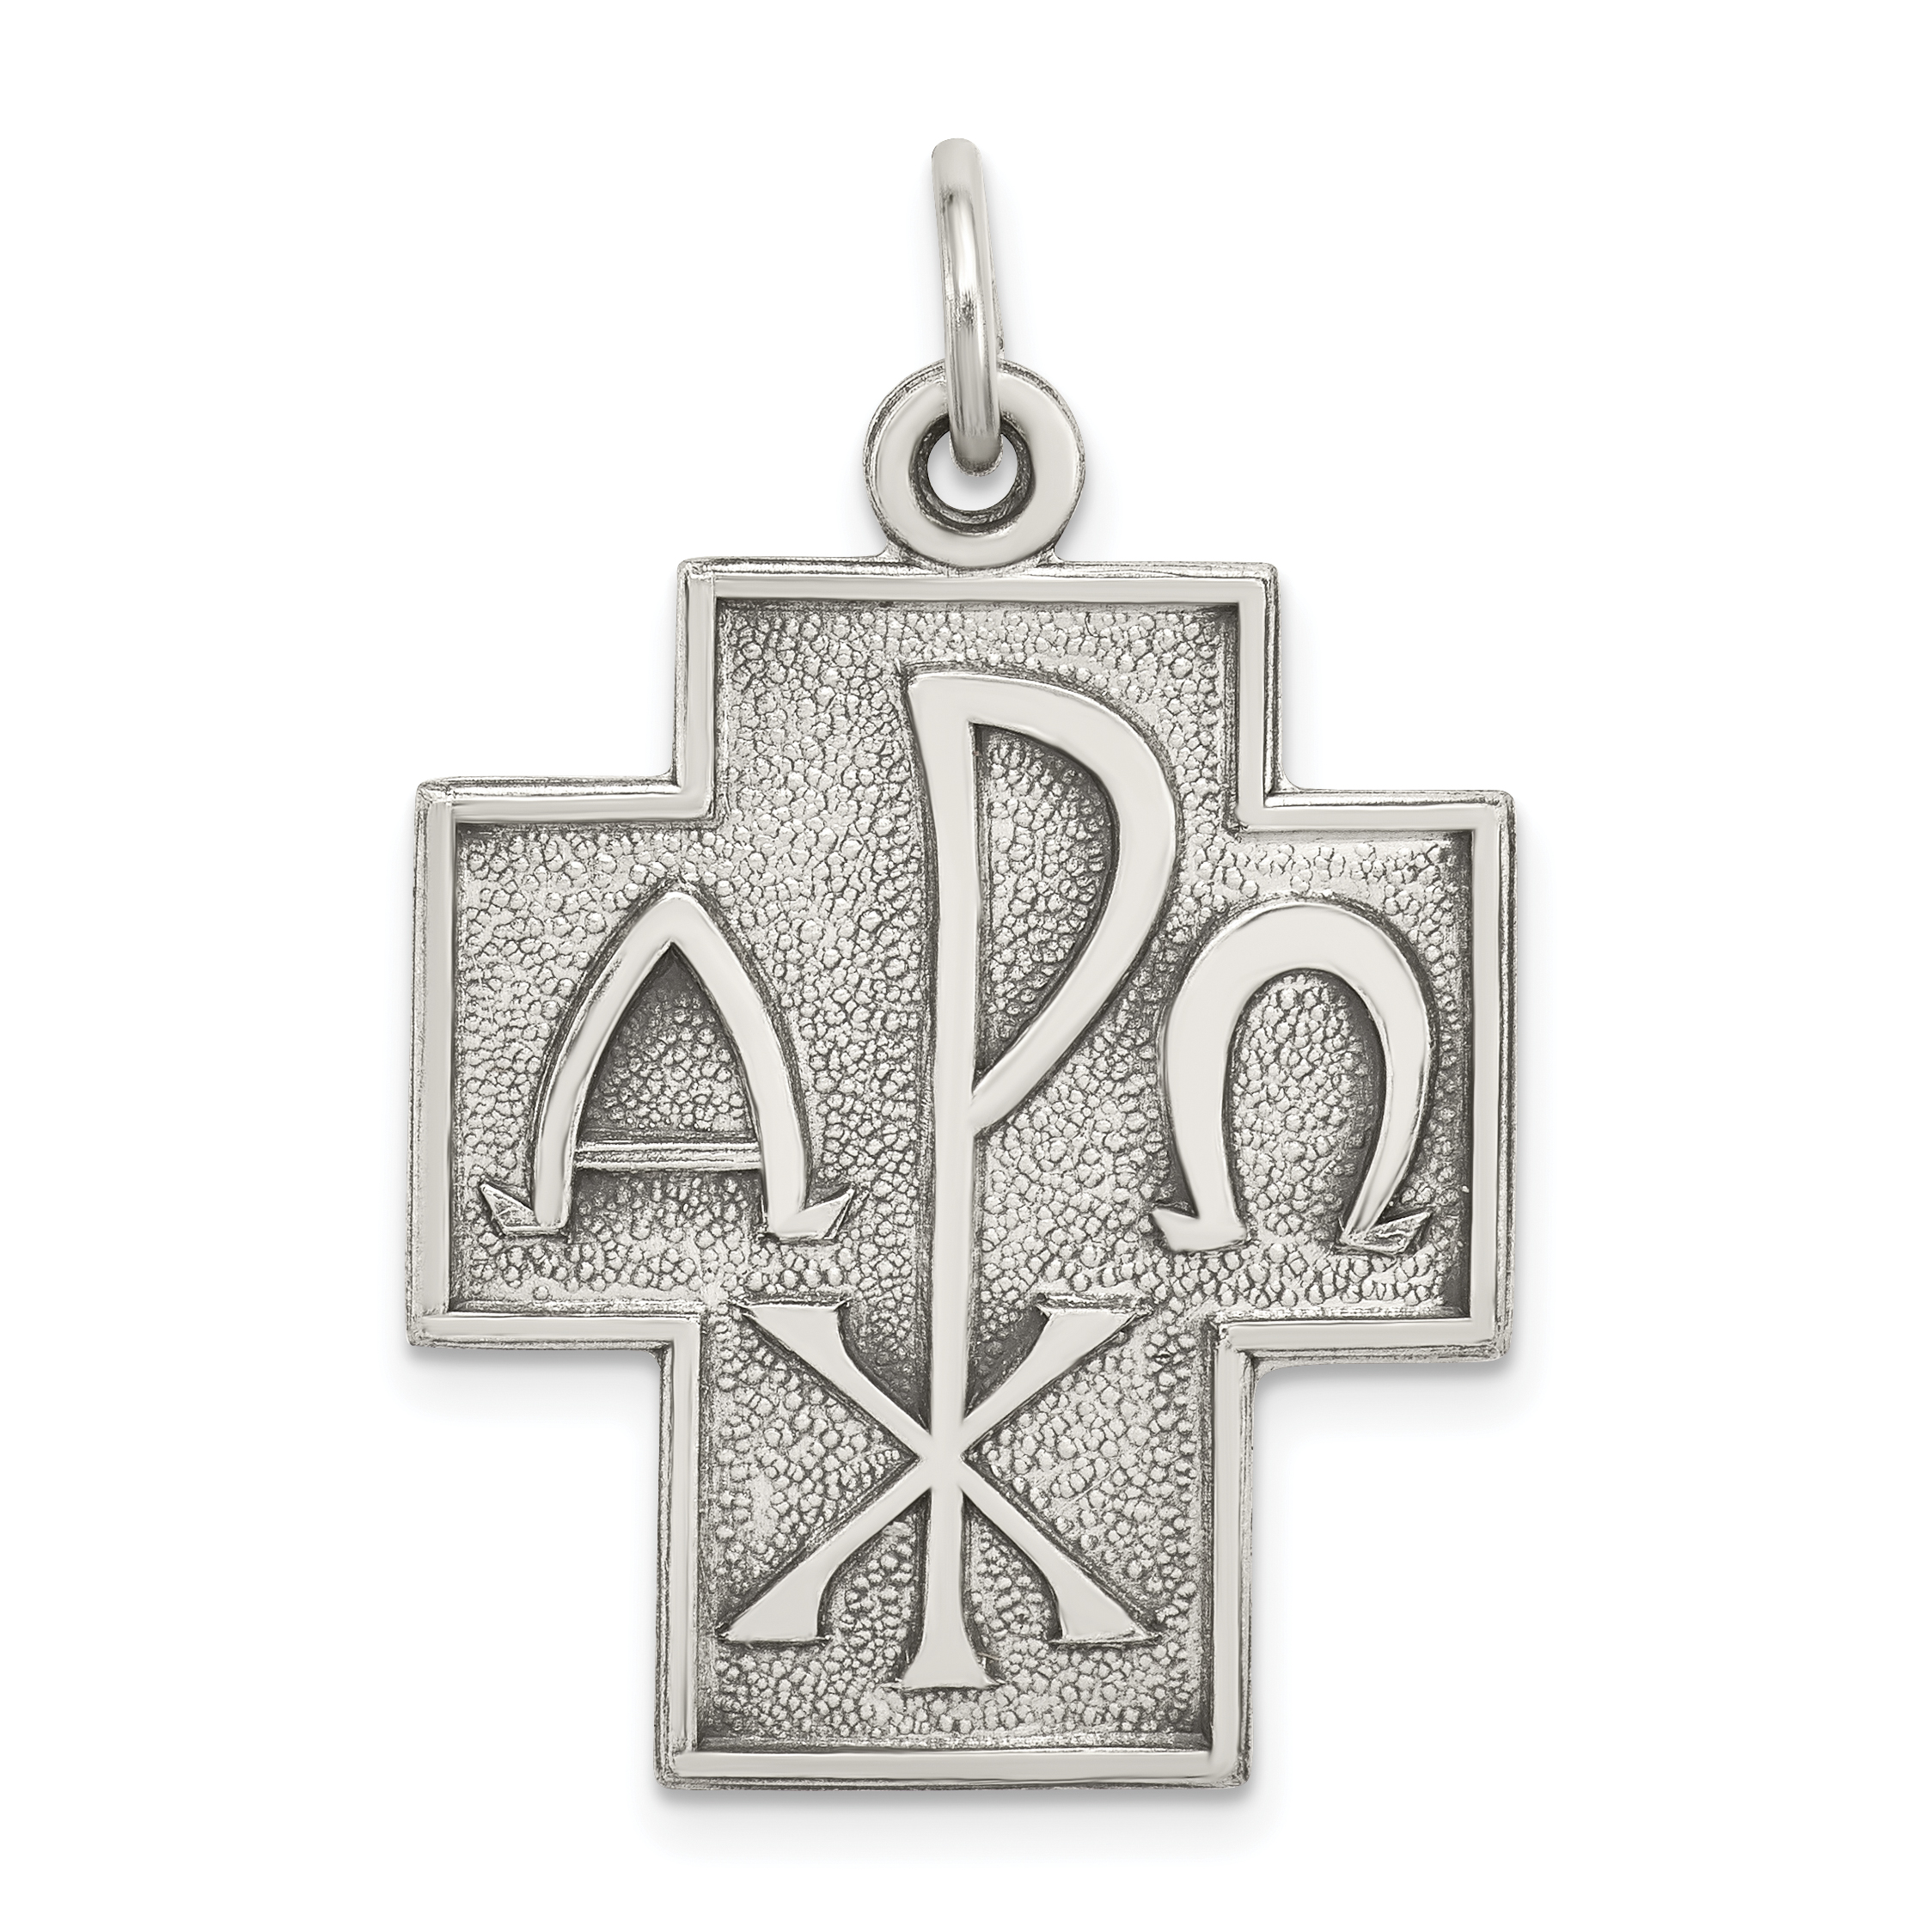 Silver antiqued alpha omega cross pendant weight 329 grams sterling silver antiqued alpha omega cross pendant weight 329 grams length 29mm width 22mm mozeypictures Gallery